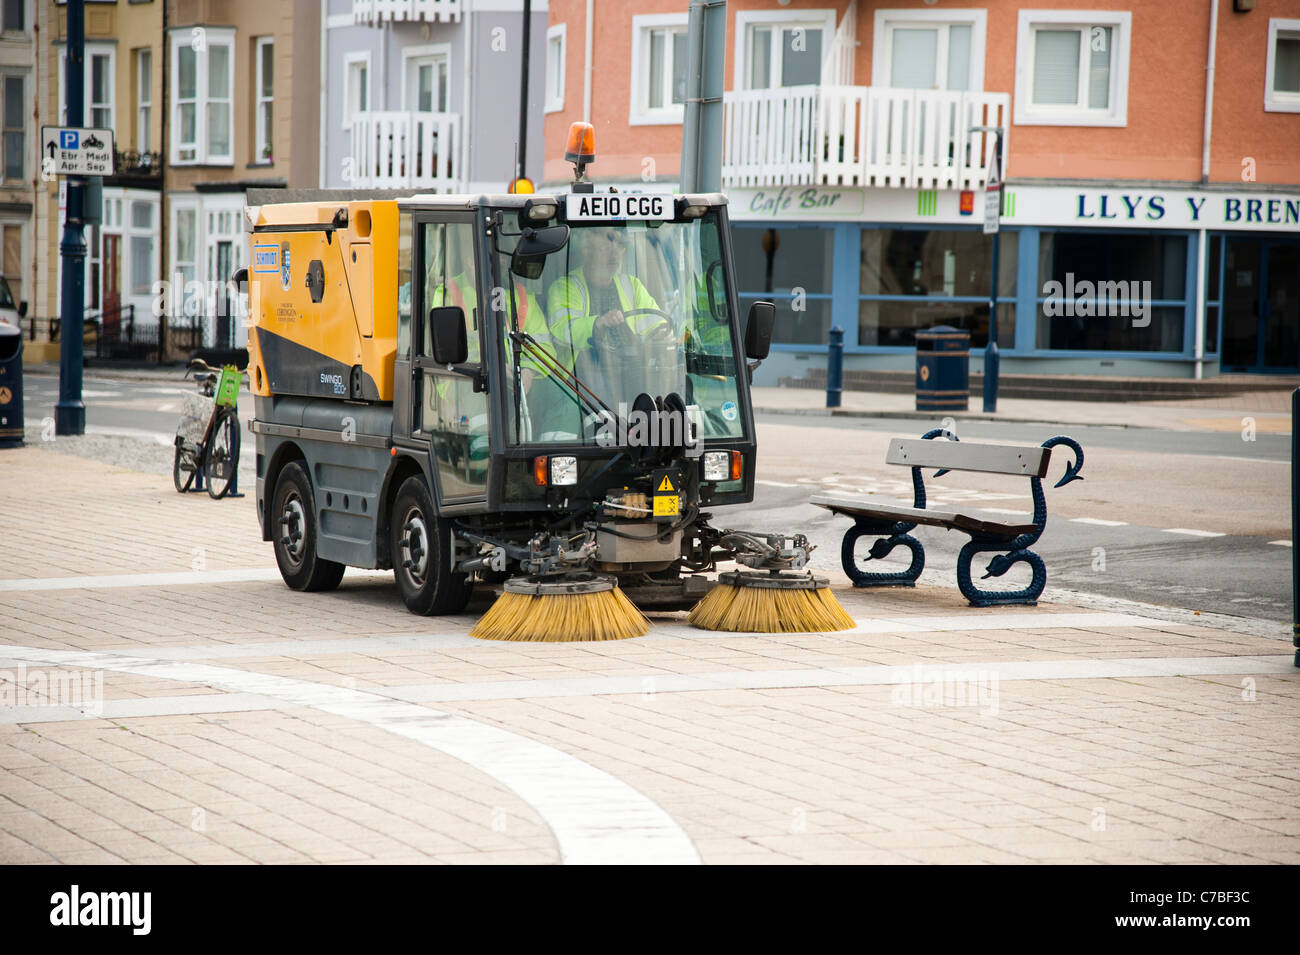 a small compact Schmidt Swingo 200 roadsweeper cleaning the pavement on Aberystwyth promenade UK - Stock Image